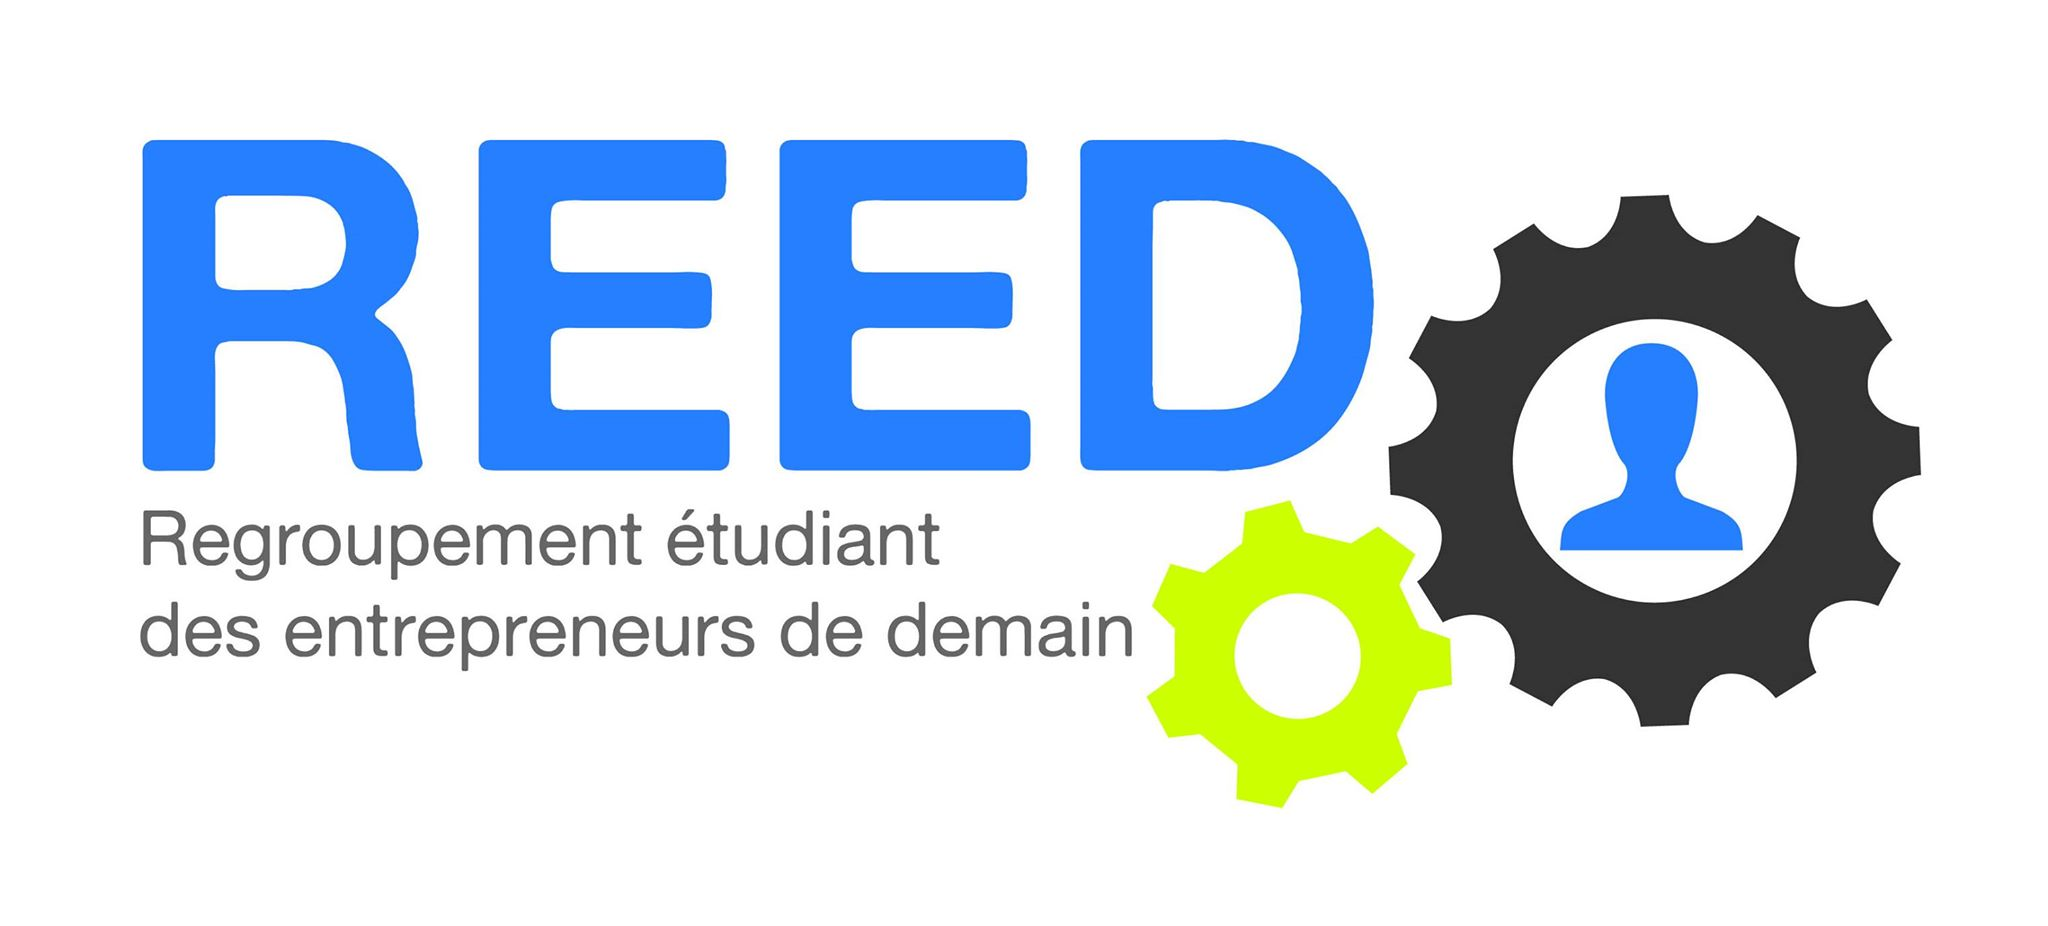 creation logo etudiant